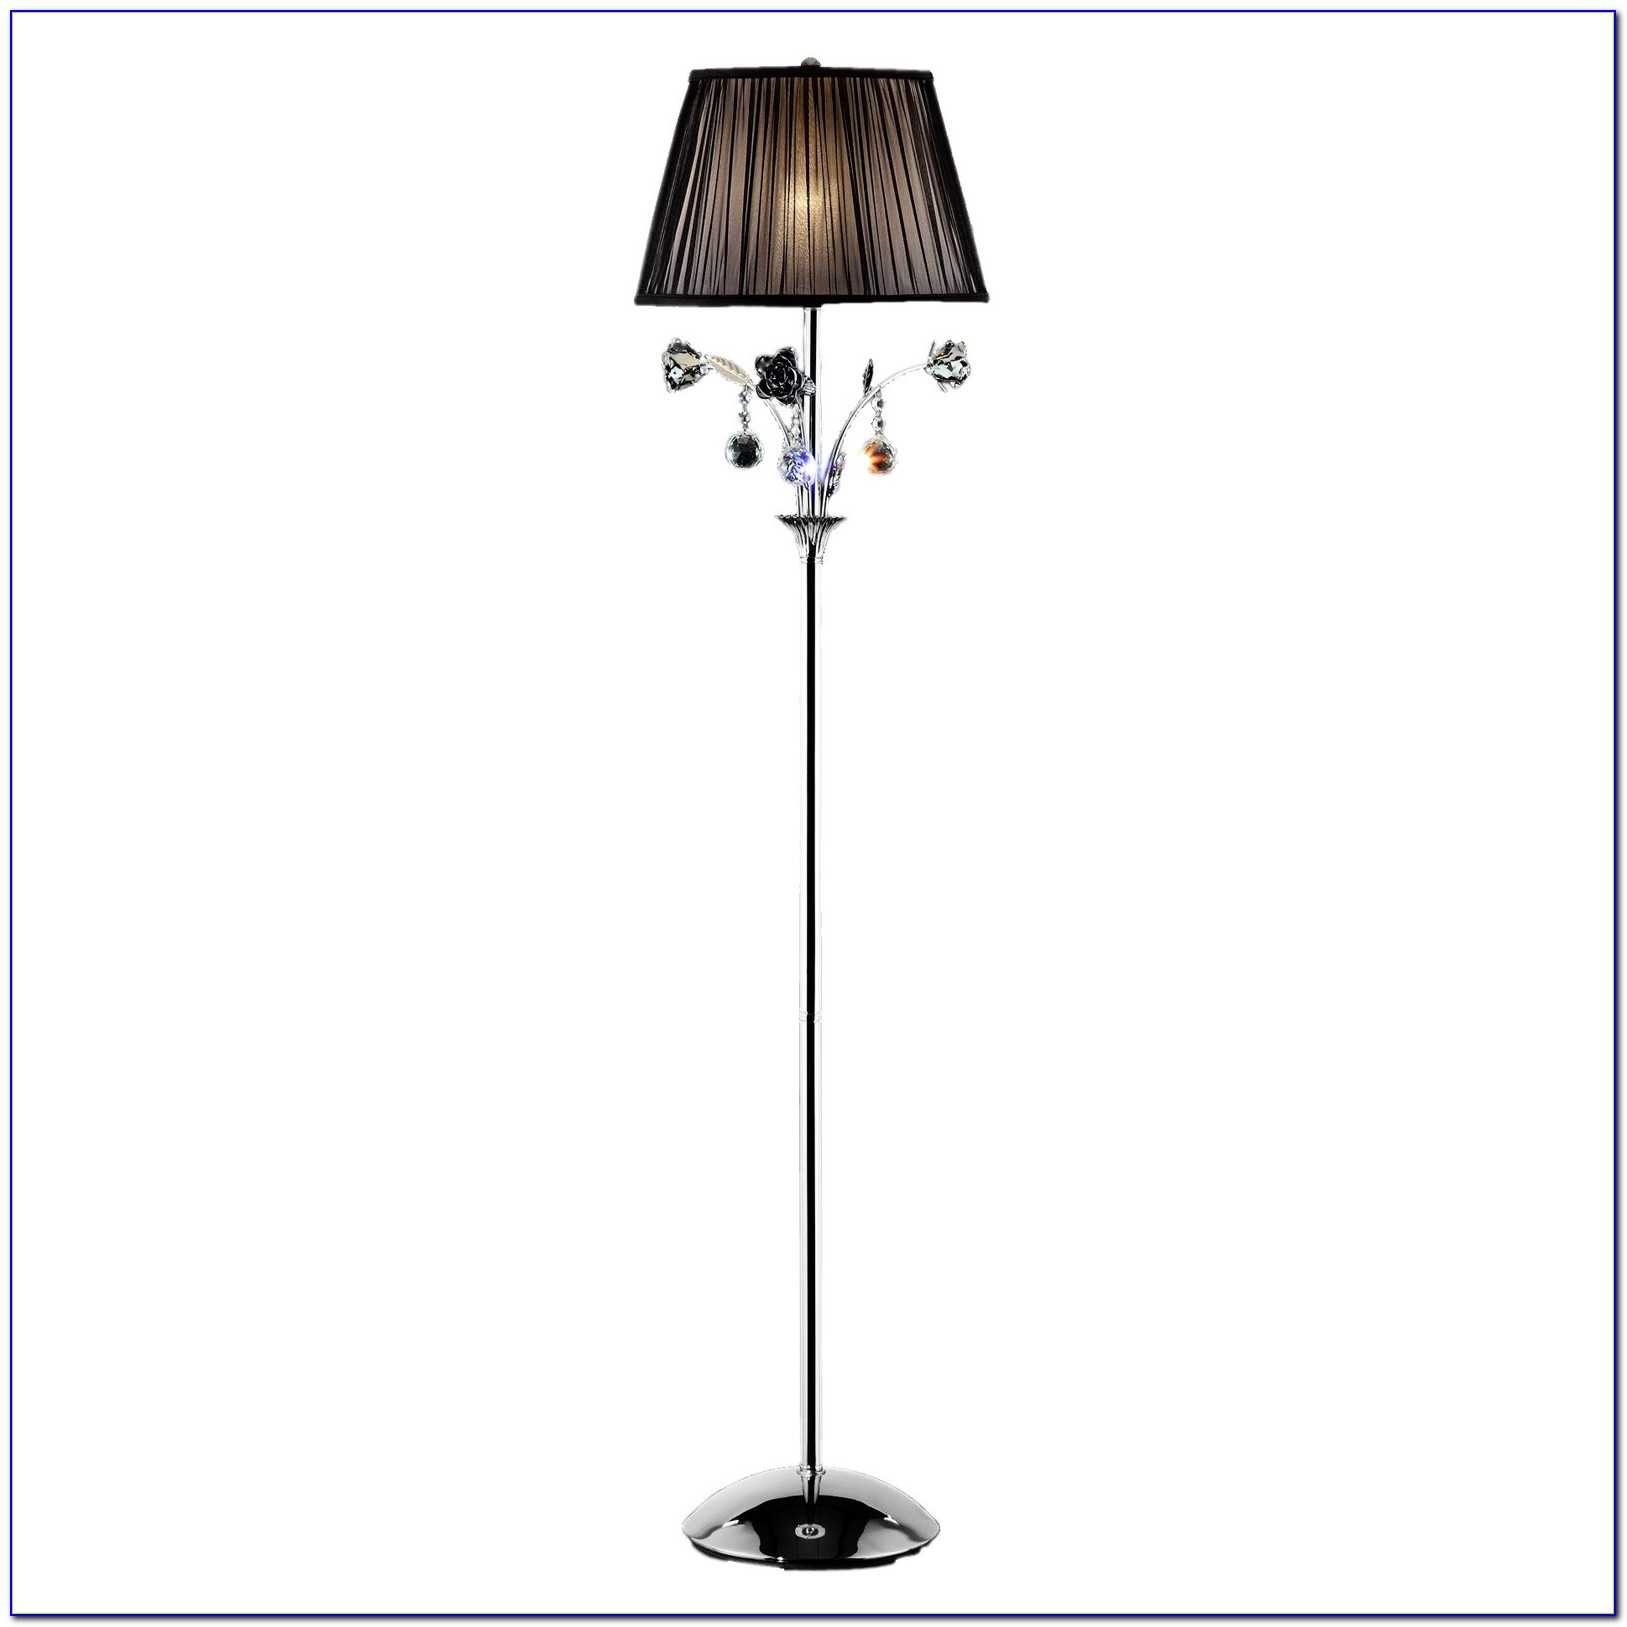 Ore International Inc. 73 Floor Lamp